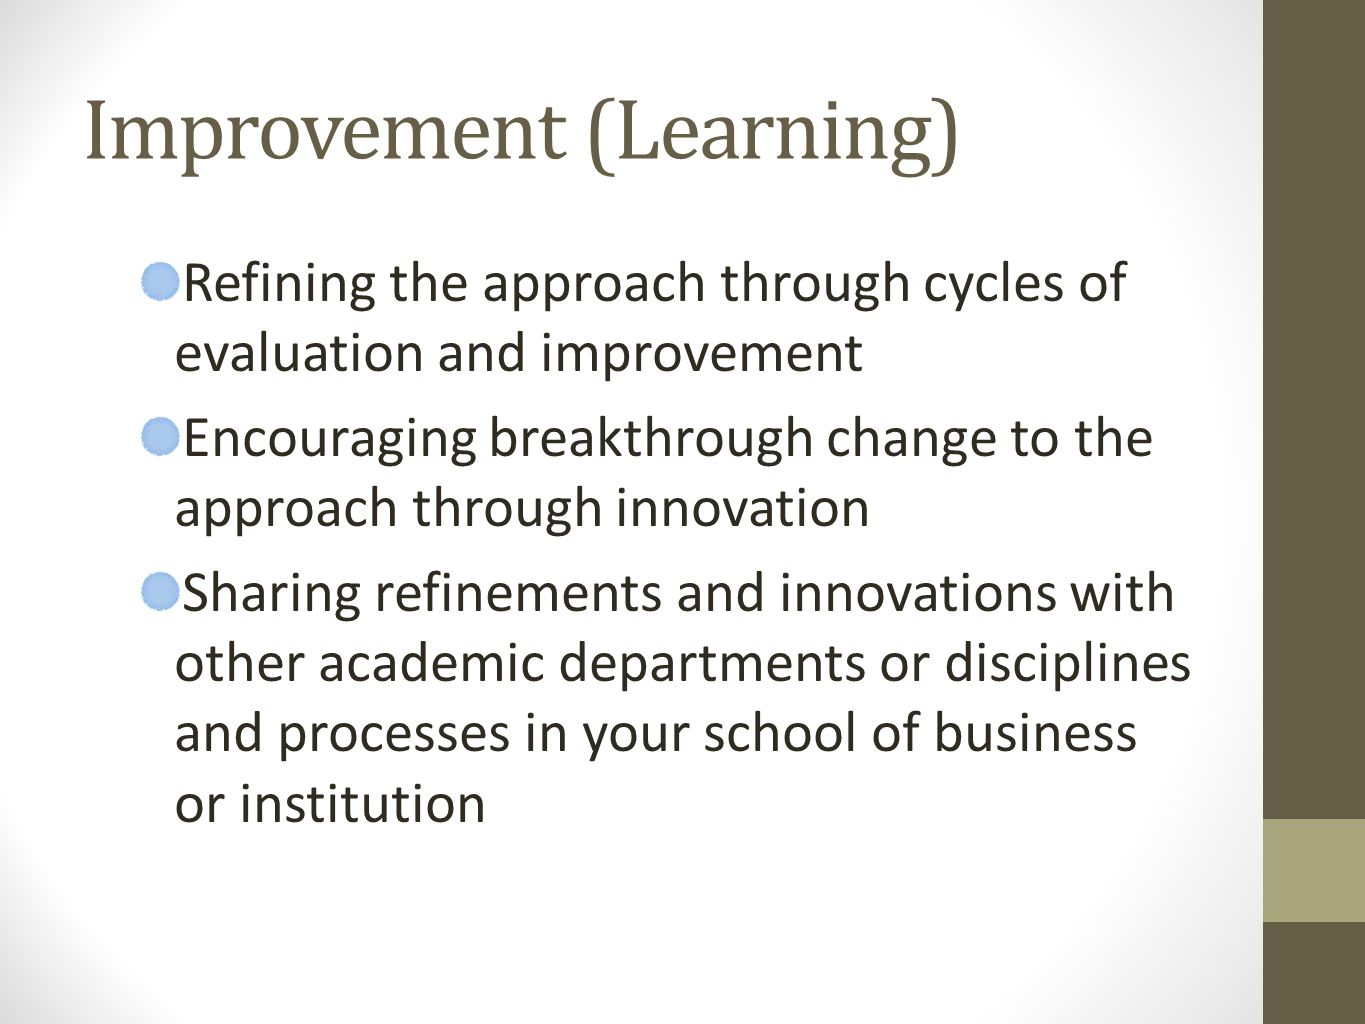 Improvement (Learning) Refining the approach through cycles of evaluation and improvement Encouraging breakthrough change to the approach through innovation Sharing refinements and innovations with other academic departments or disciplines and processes in your school of business or institution